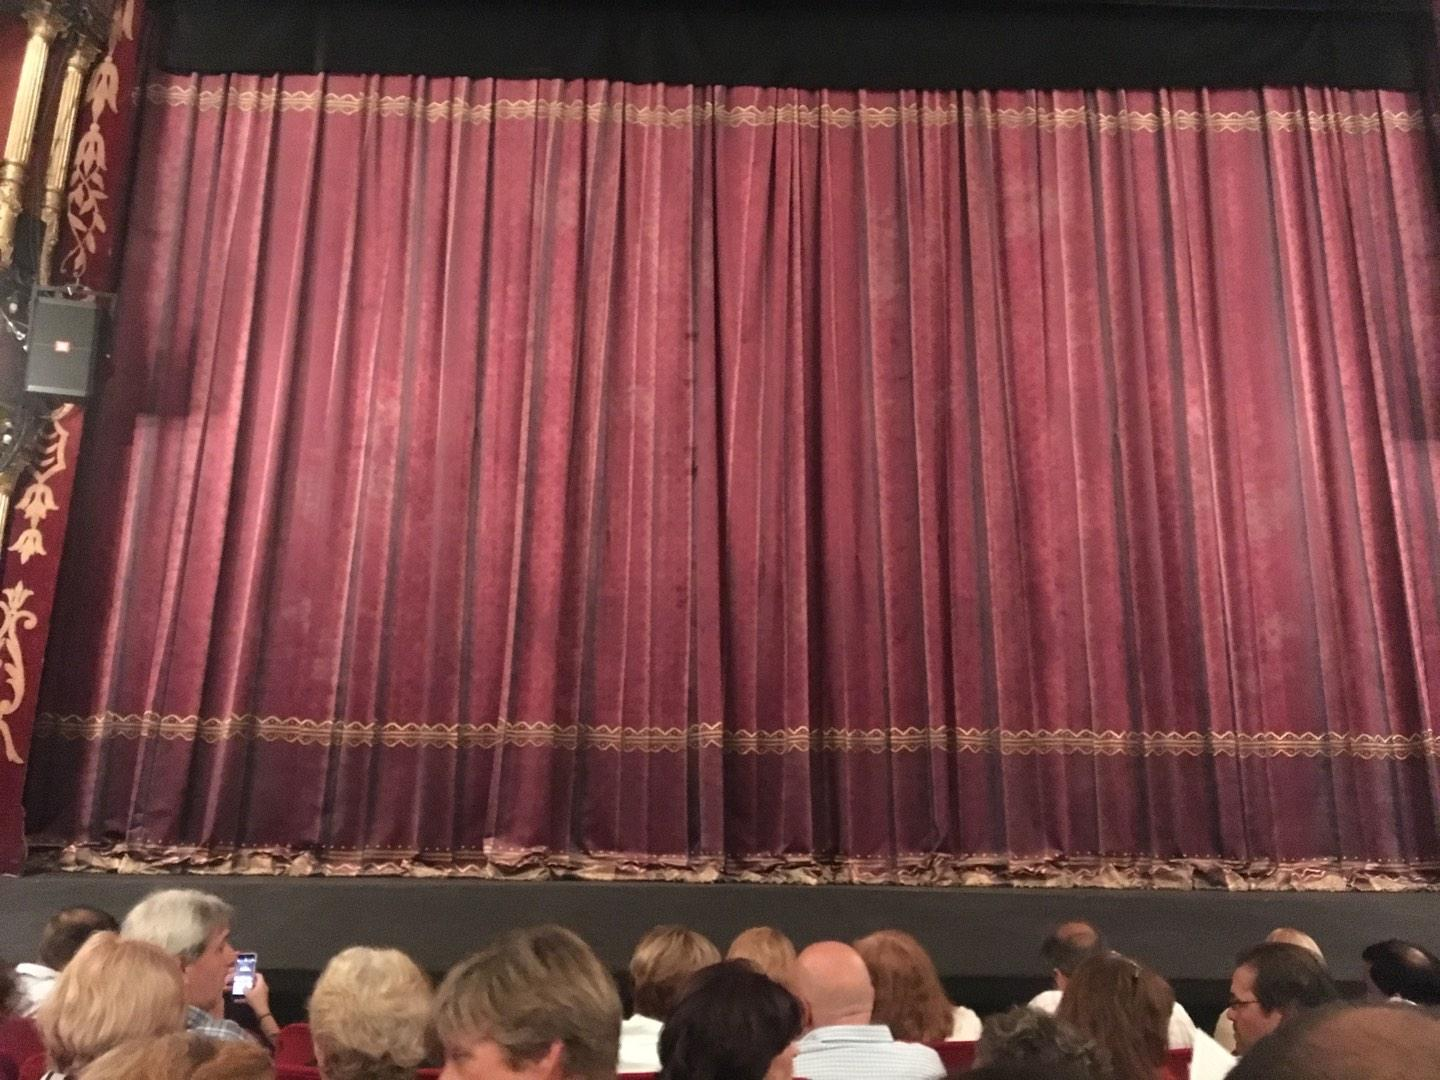 Teatro Liceo Section Main Row 6 Seat 8